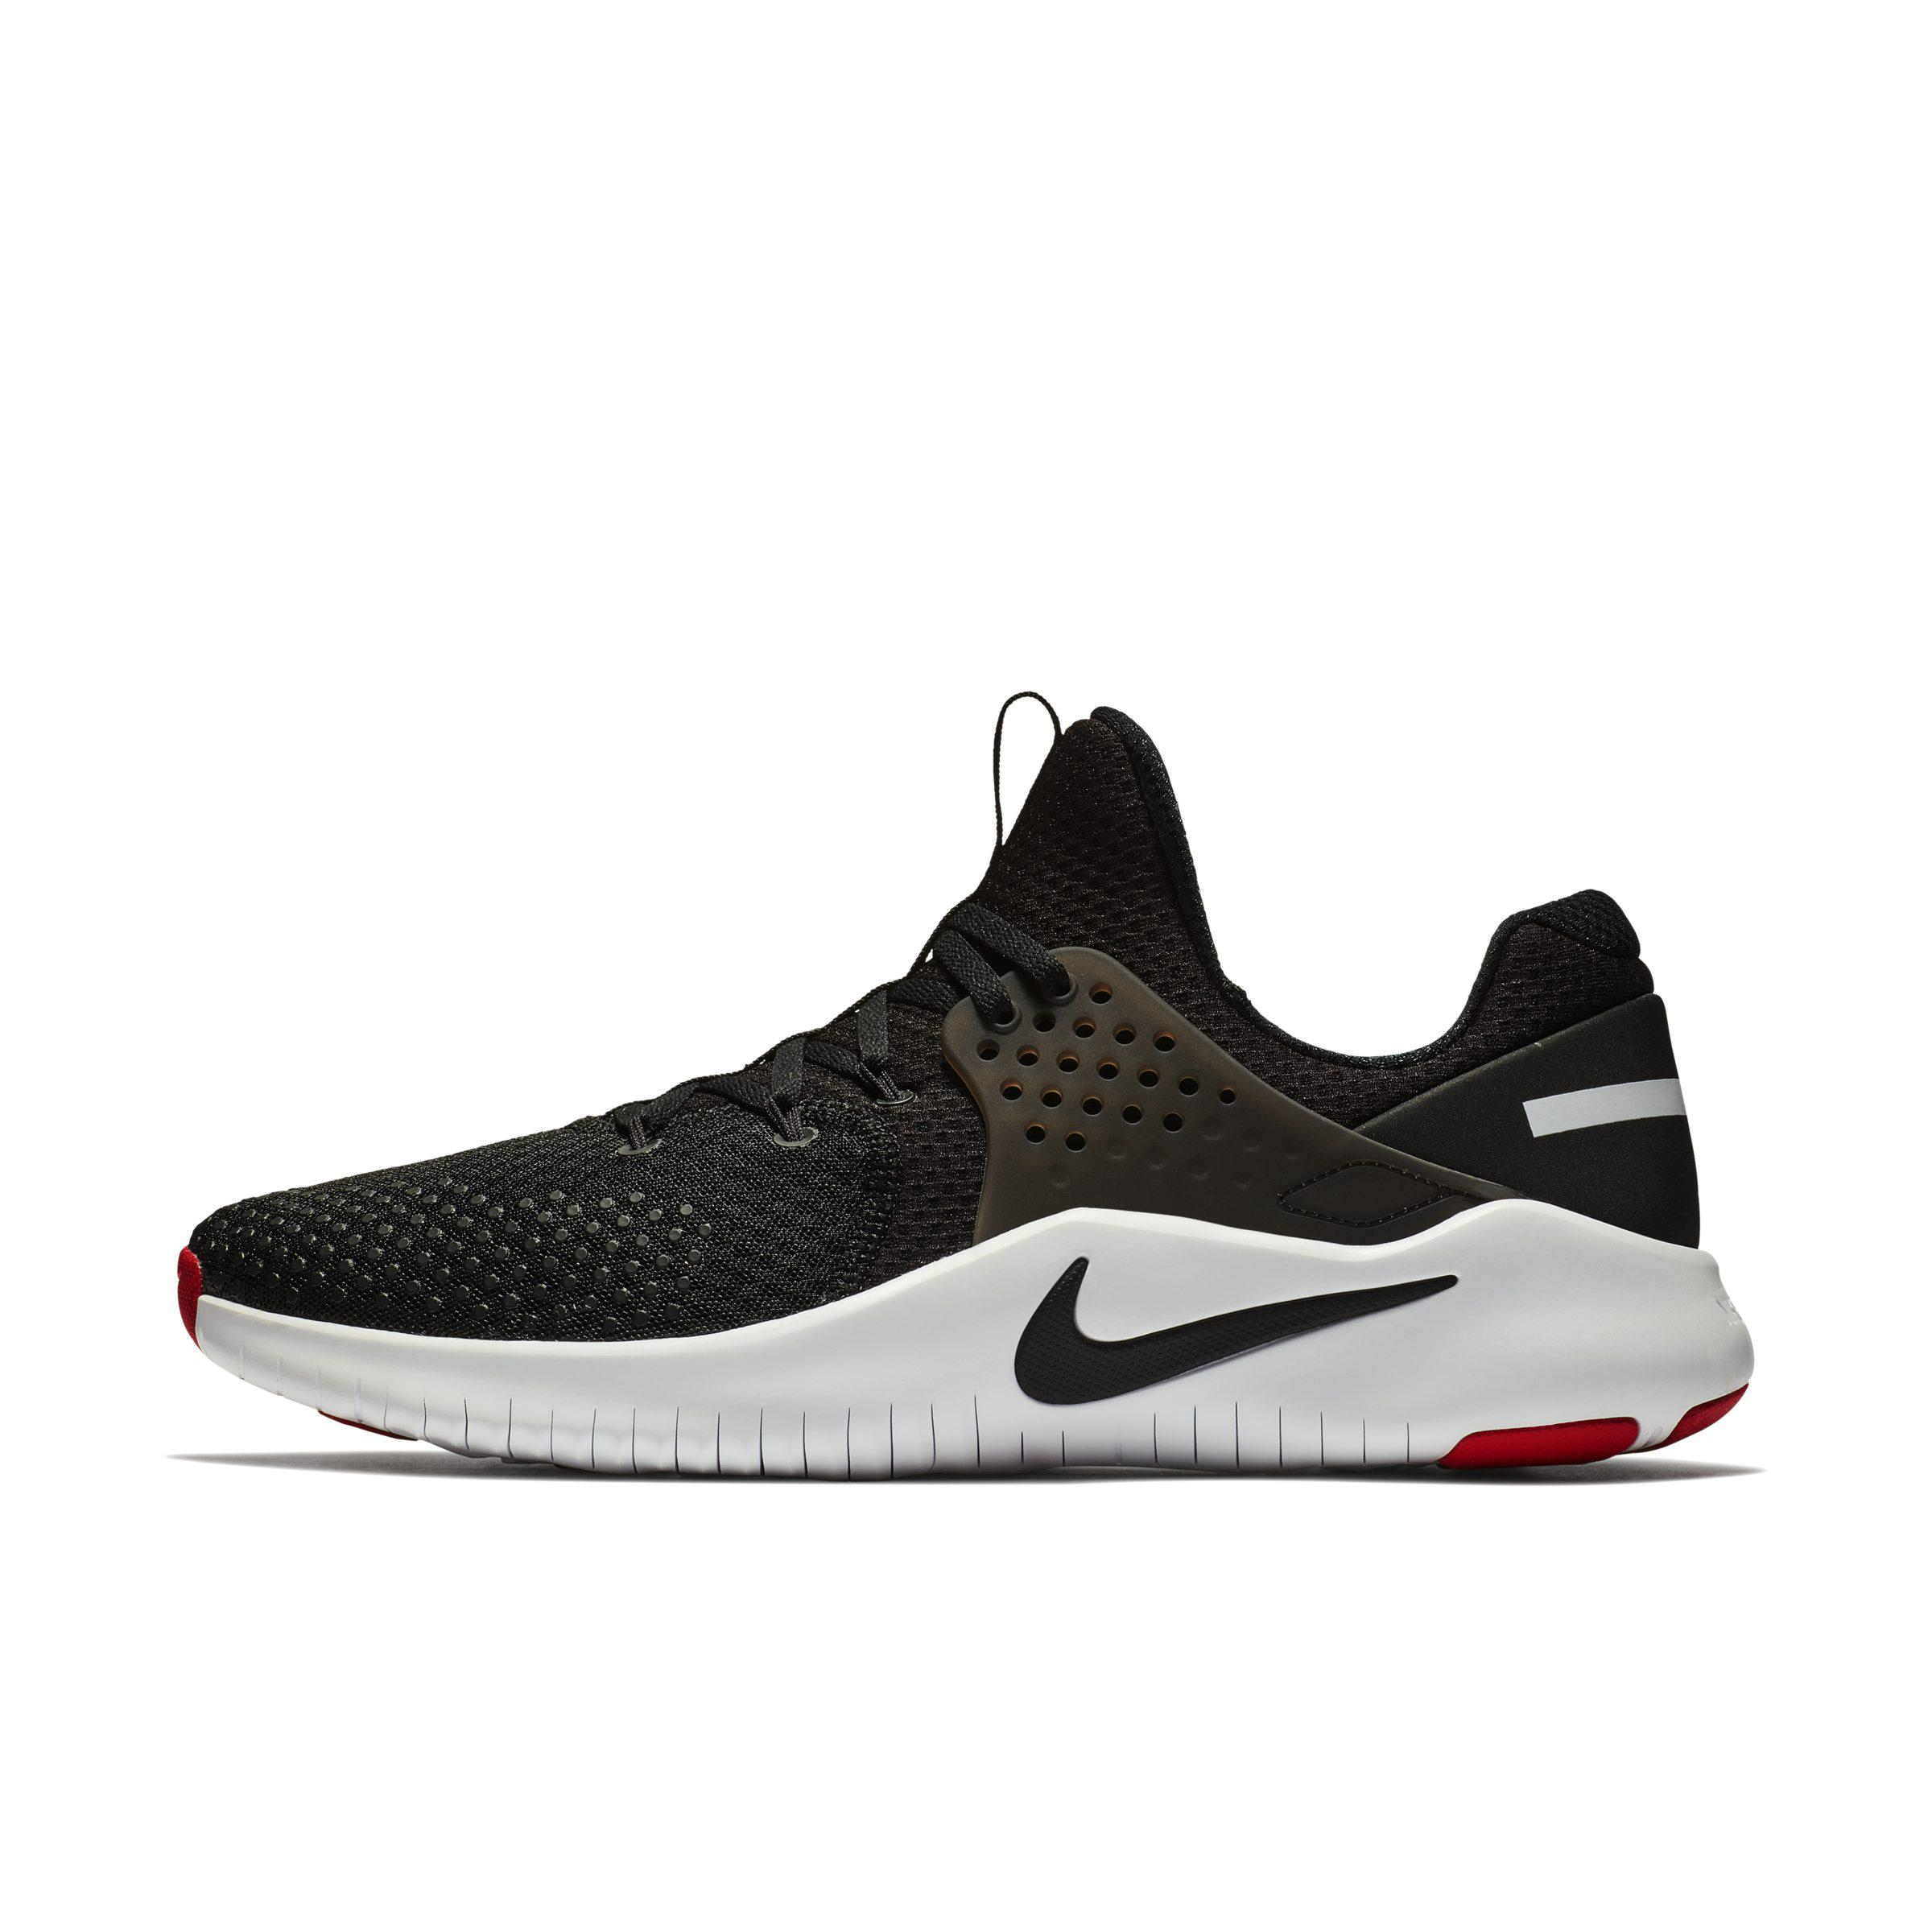 d972136c4cb7 australia mens nike zoom train action black grey red reduced 85ef5 006ac   spain nike free tr v8 gym hiit cross training shoe in black for men lyst  986d0